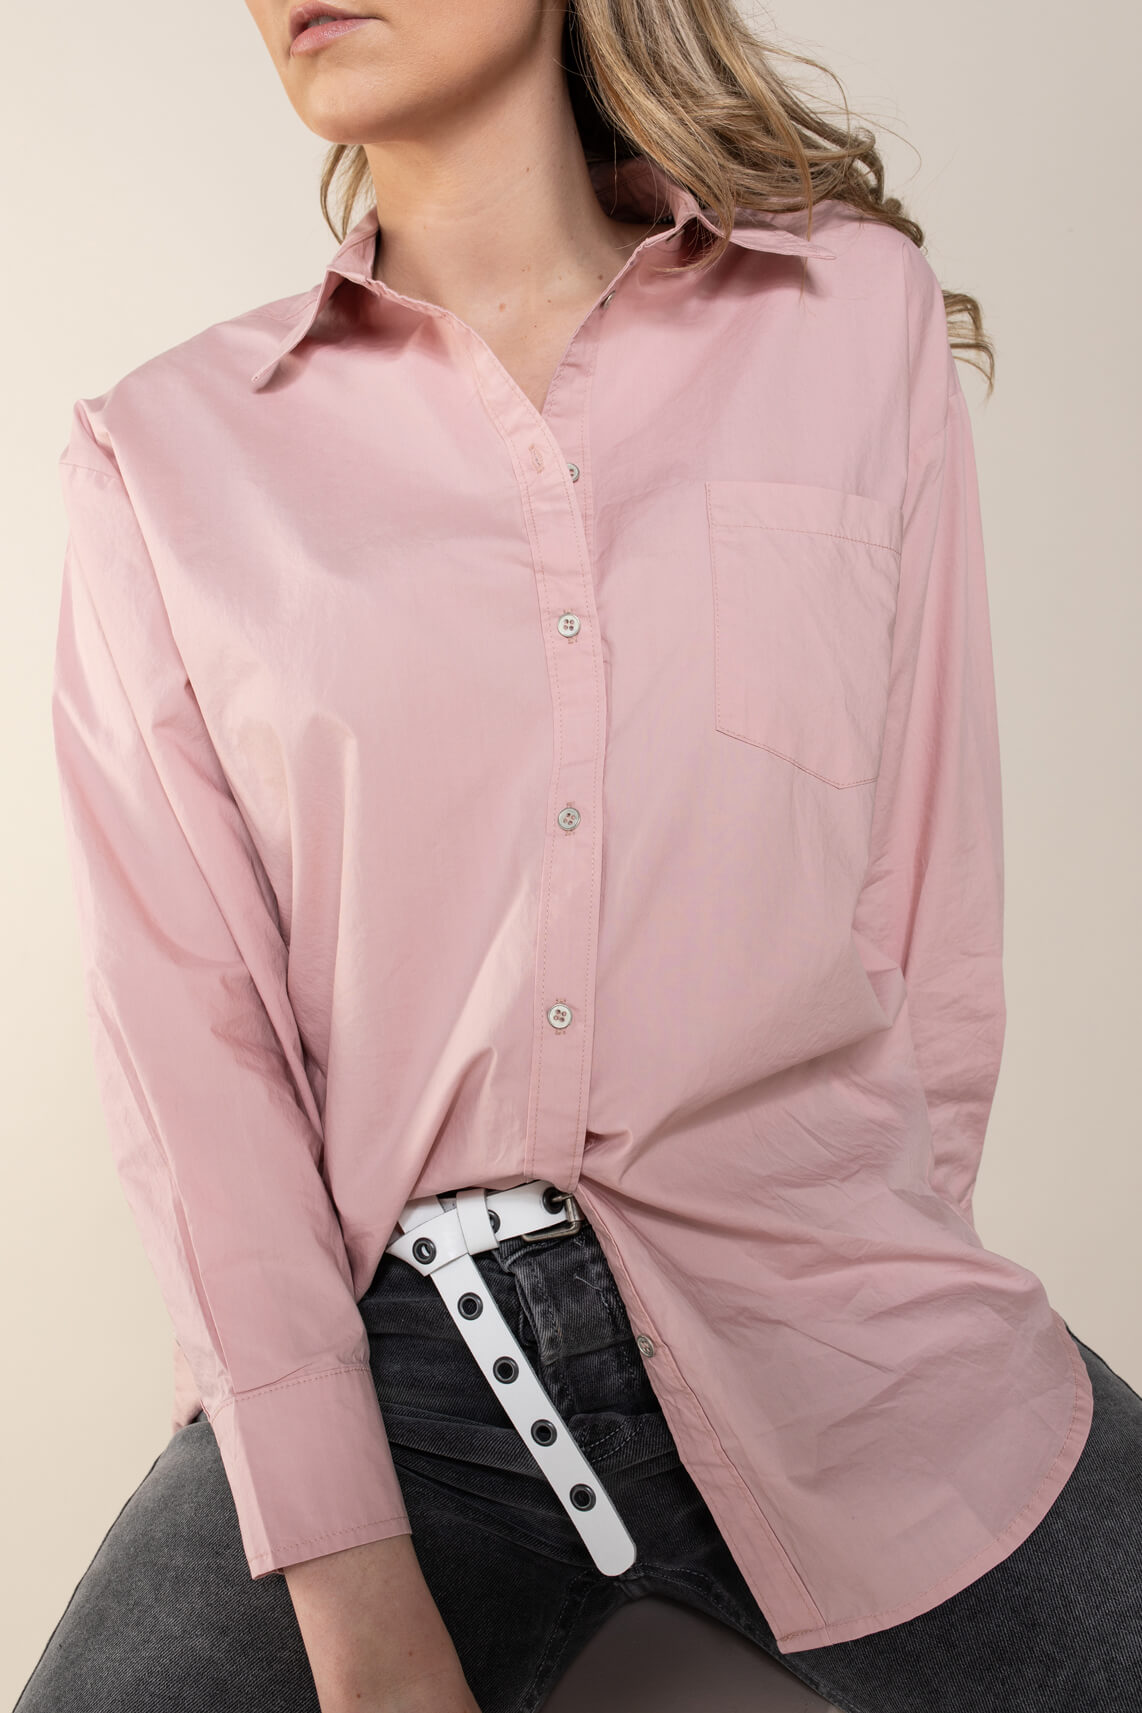 Co Couture Dames Coriolis blouse roze